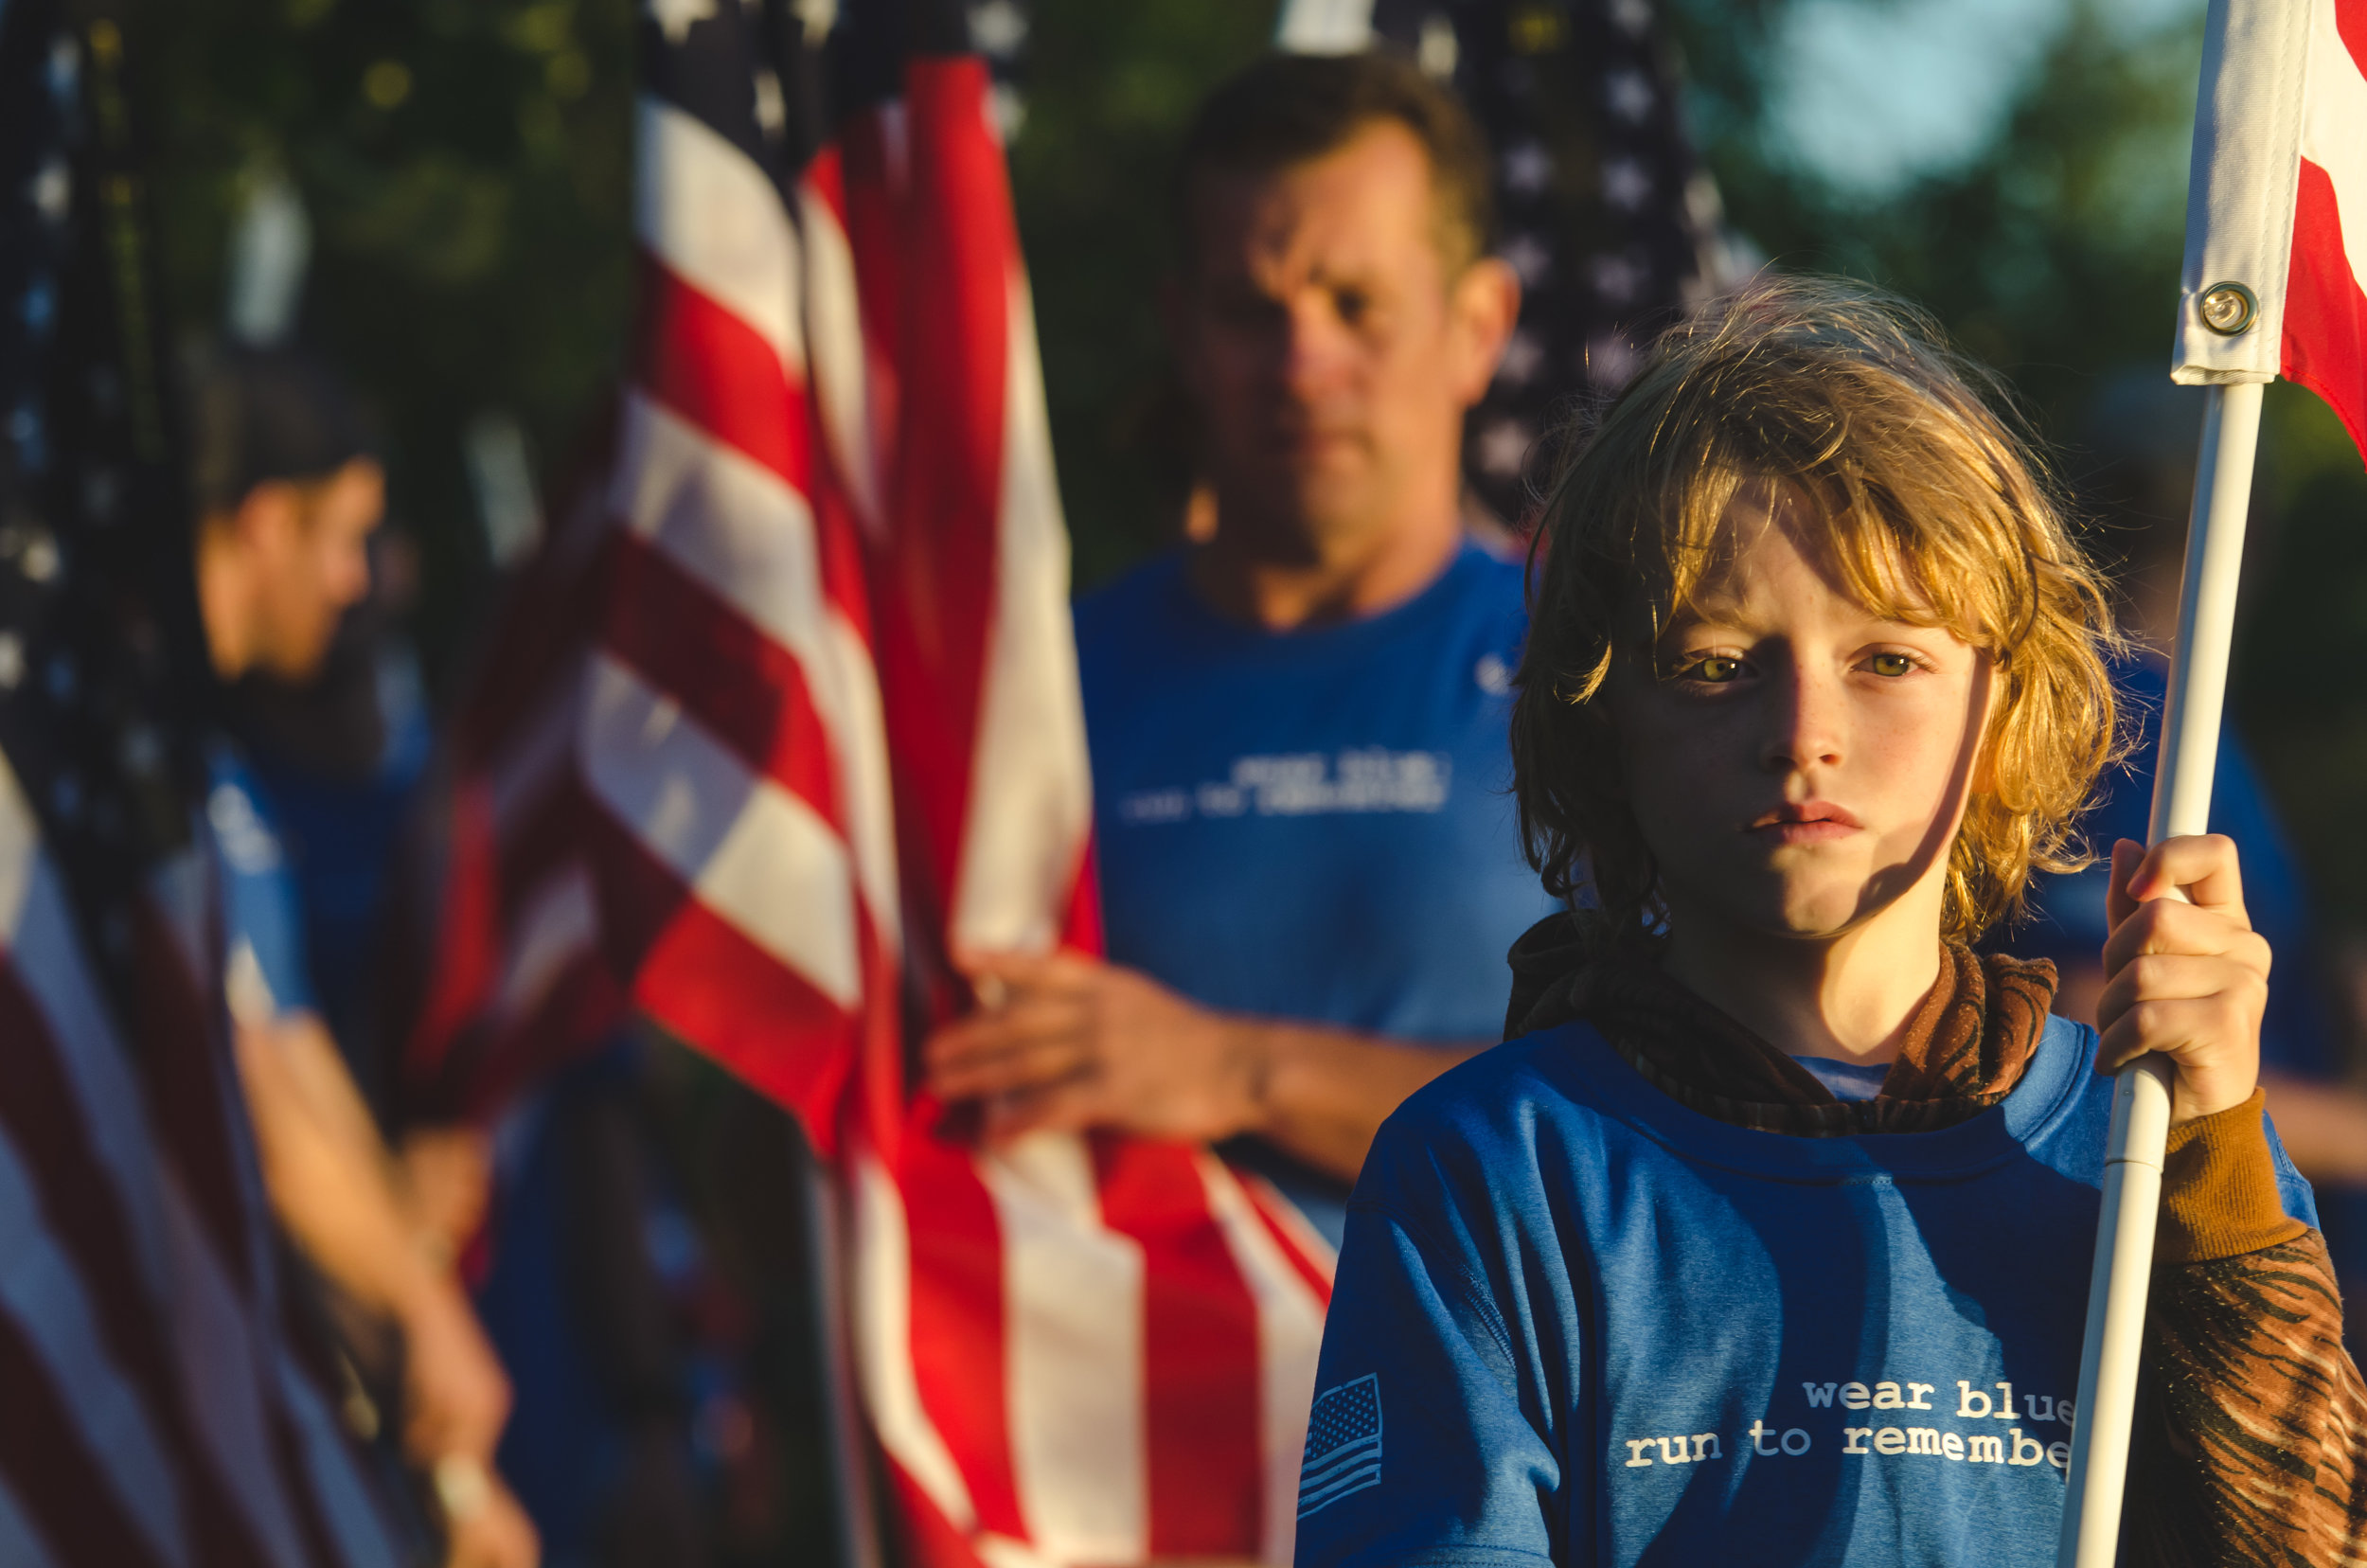 chicago, il - wear blue: run to remember